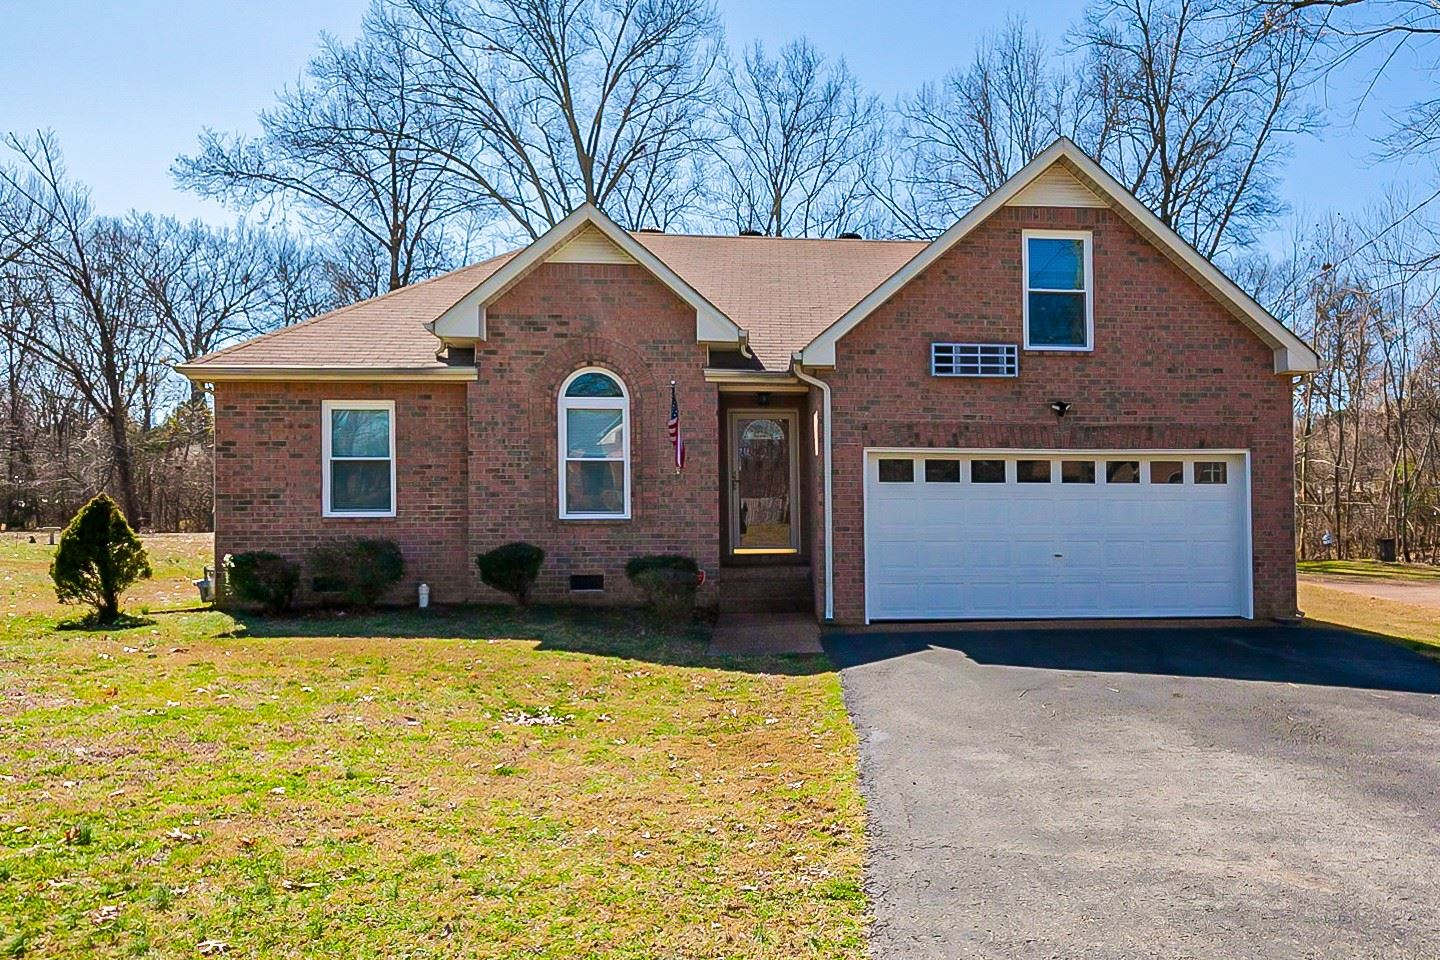 146 Candle Wood Dr, Hendersonville, TN 37075 - MLS#: 2233605